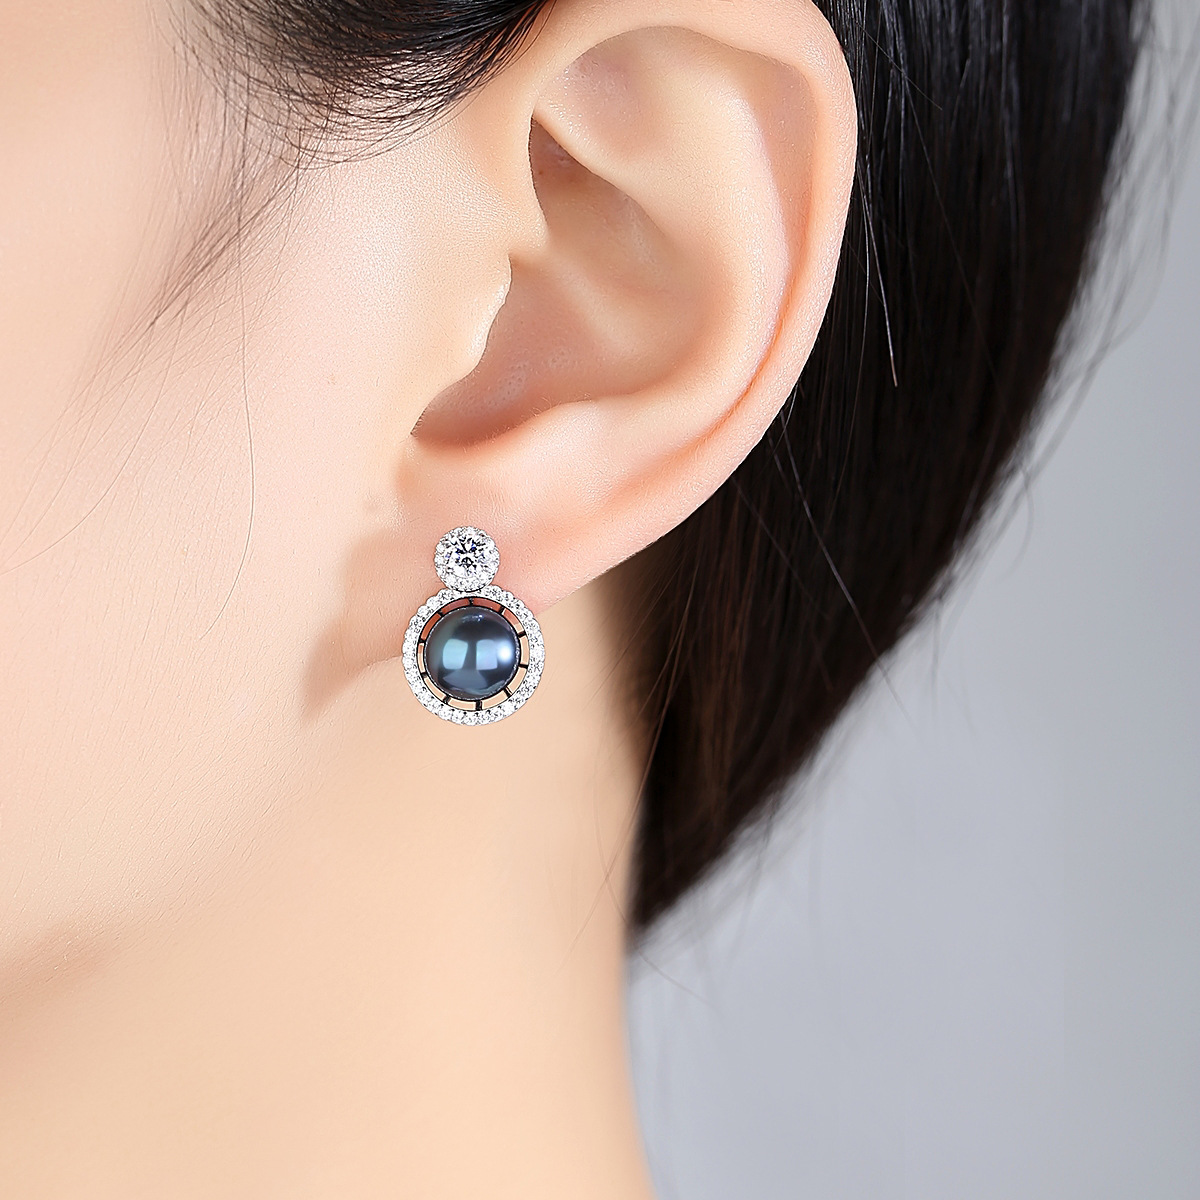 Korea S925 Sterling Silver Pearl Zircon Stud Earrings Woman Fashion White Black Natural Freshwater Pearl Wedding Banquet Jewelry